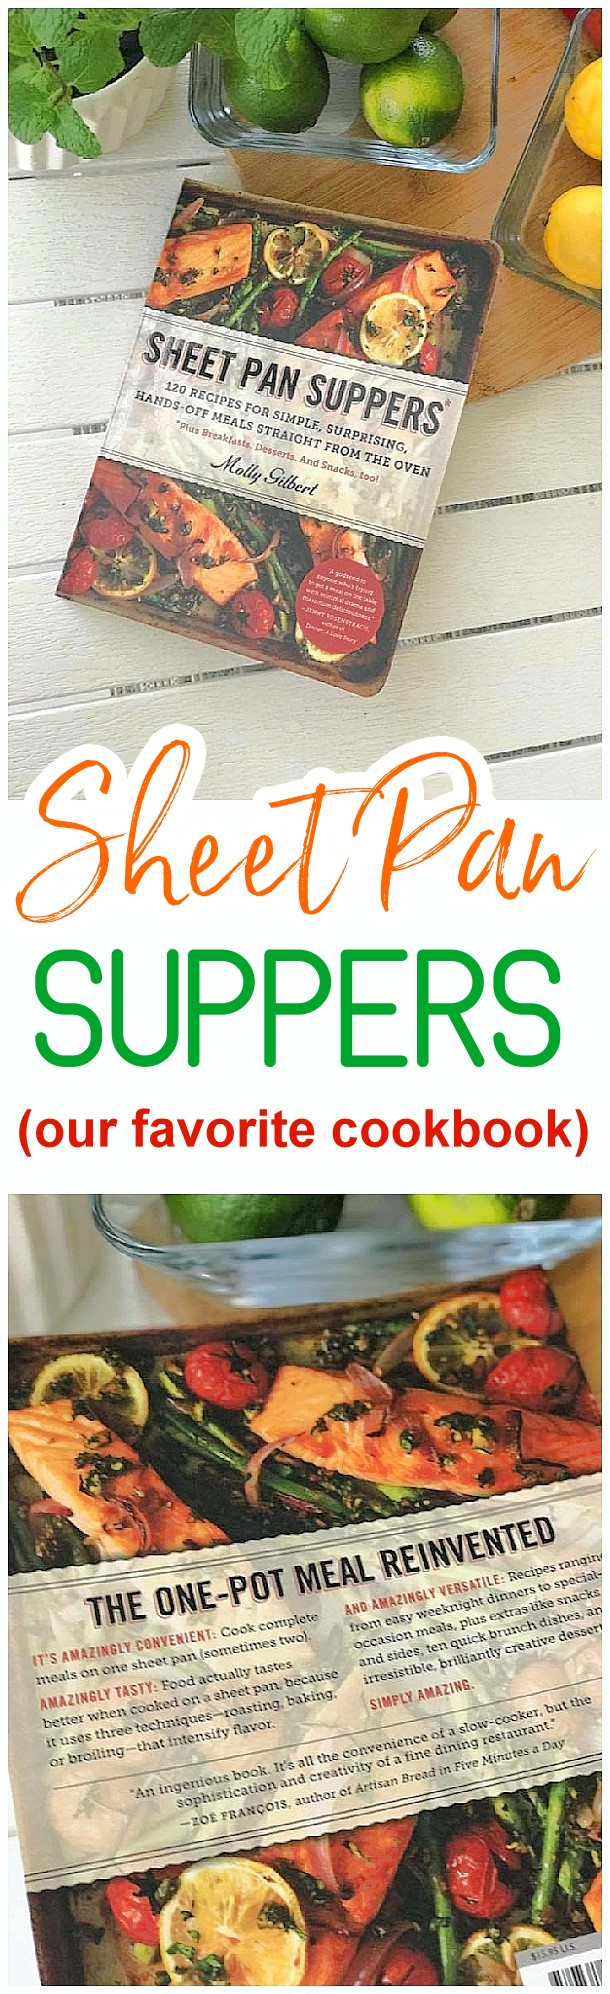 Easy and Quick Sheet Pan Suppers Recipe Book by Molly Gilbert - Family Style ONE Pan meals - baked and healthier lunches and dinners #sheetpansuppers #30minutemeals #30minutedinners #thirtyminutedinners #30minuterecipes #fastrecipes #easyrecipes #quickrecipes #mealprep #simplefamilymeals #simplefamilyrecipes #simplerecipes